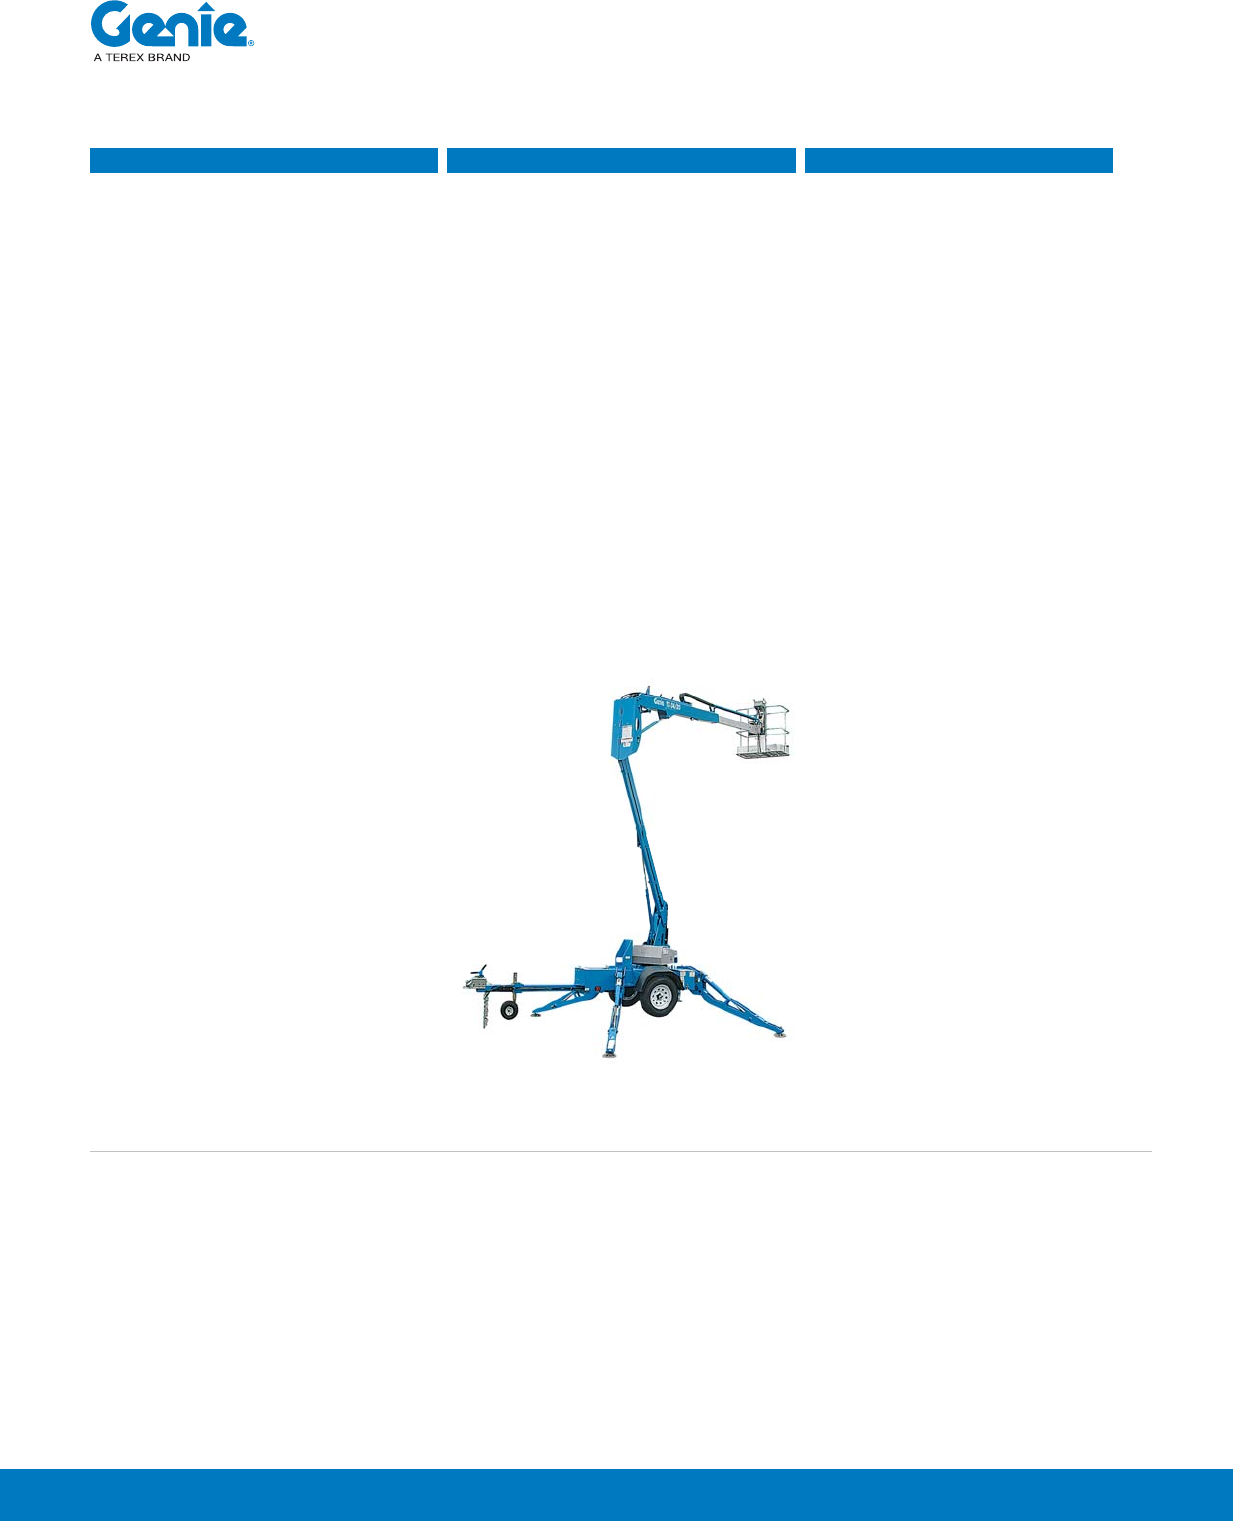 Genie Tz 34 20 Specifications Tz Booms Spec 1 22 14